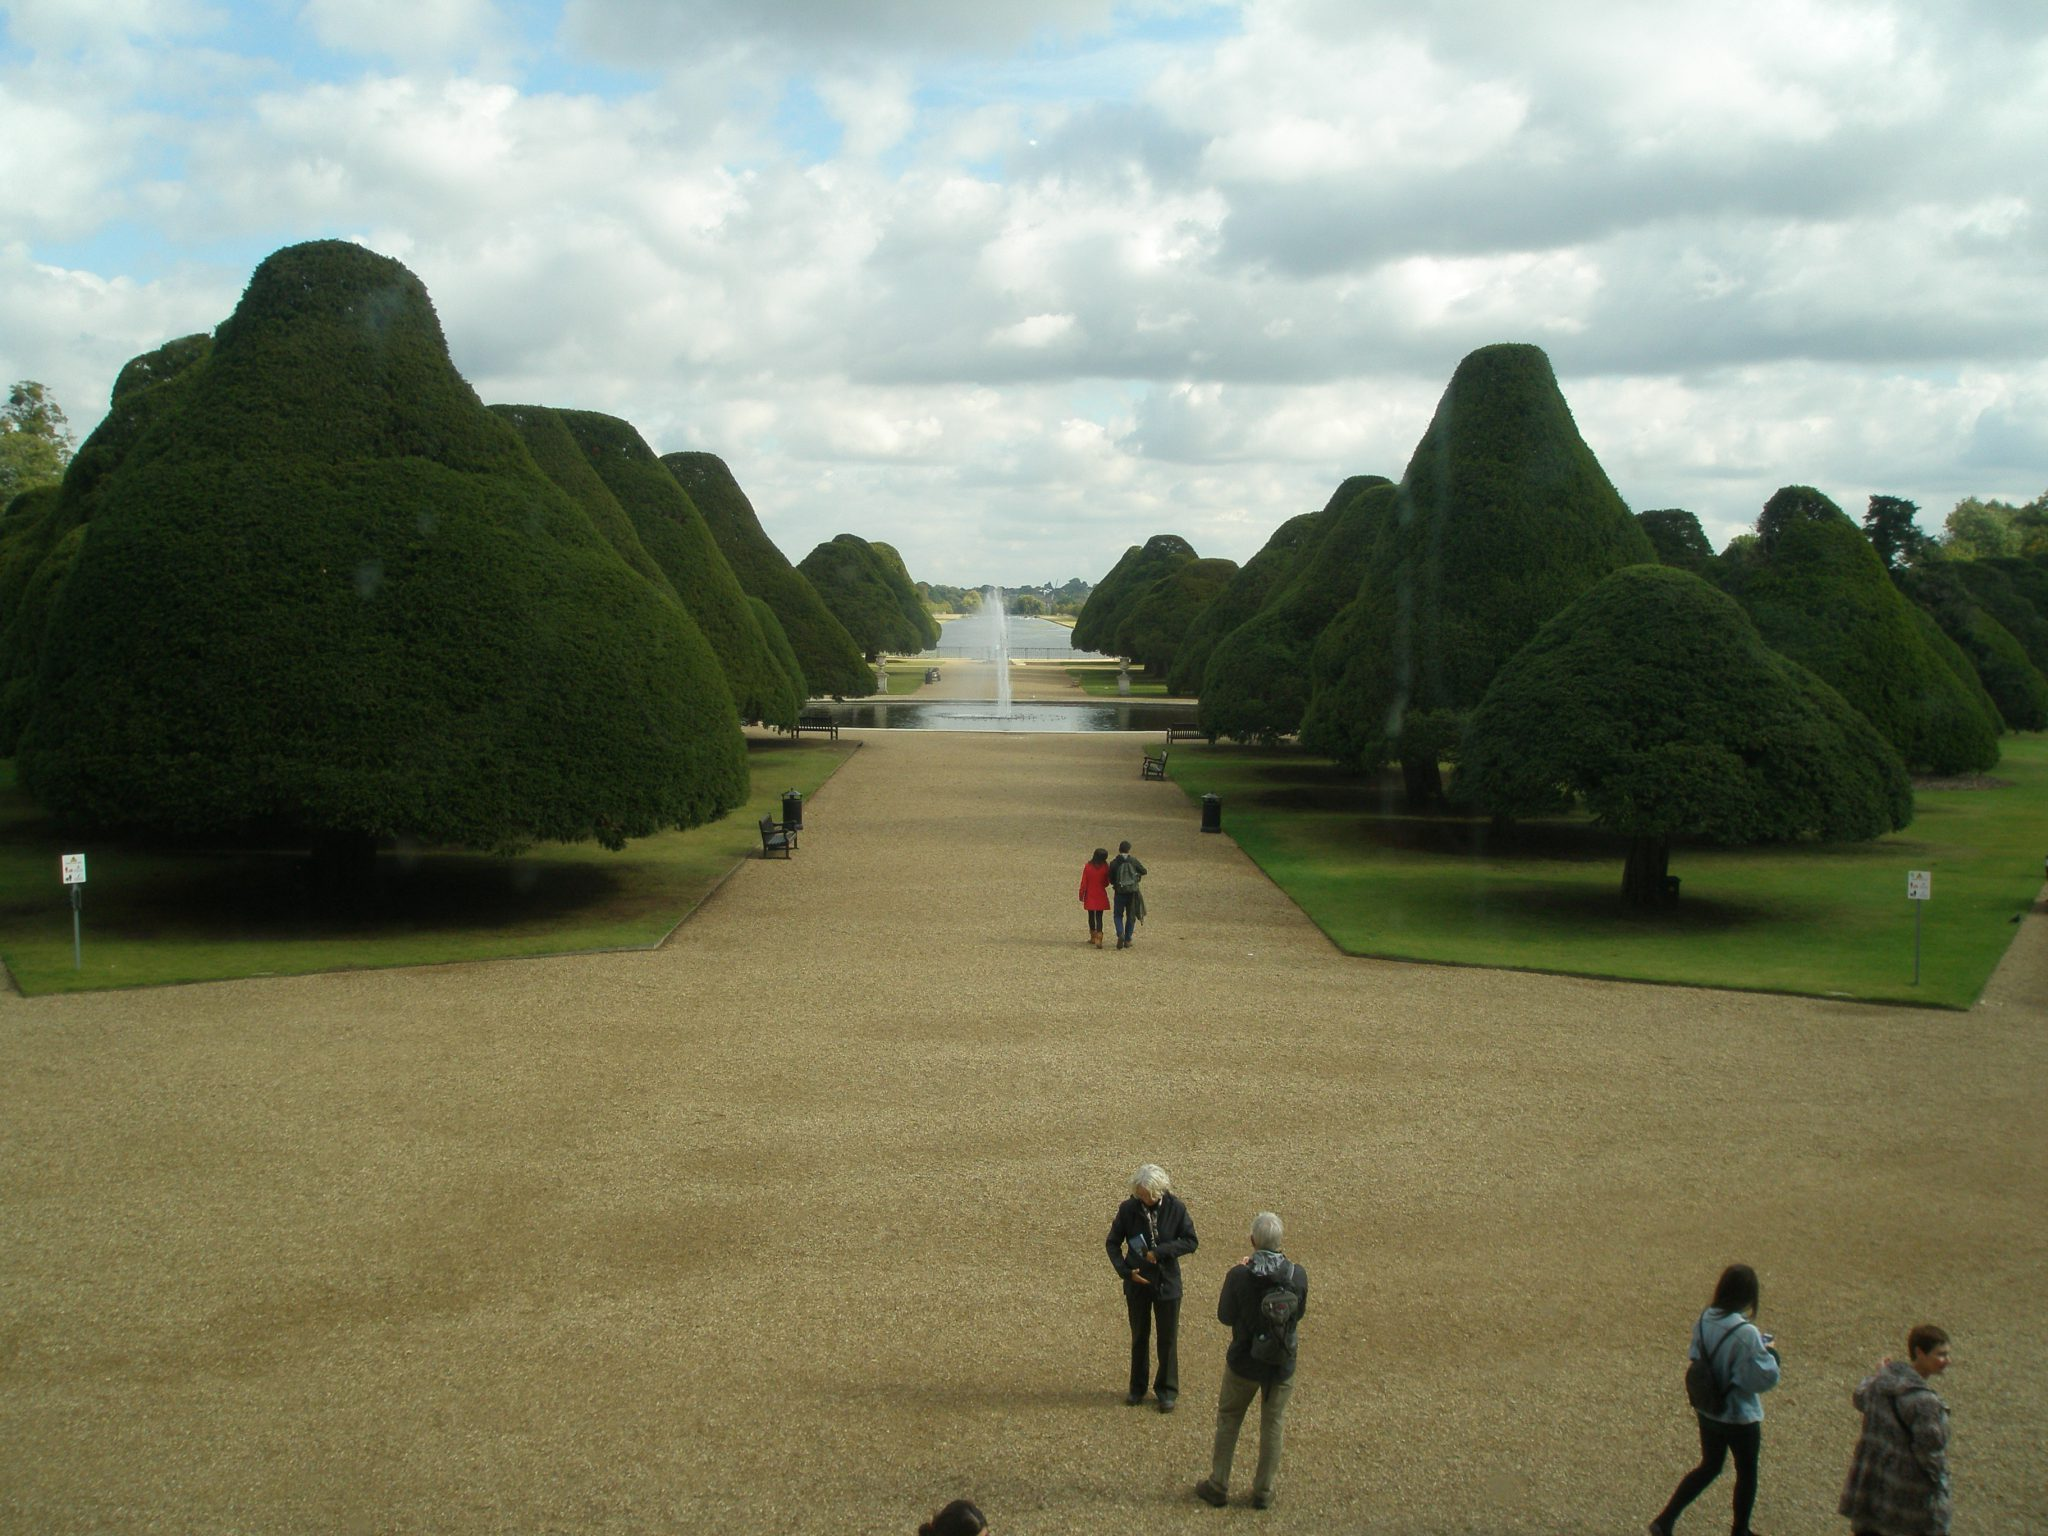 View of the Great Fountain Garden, with the straight expanse of the Long Water in the distance